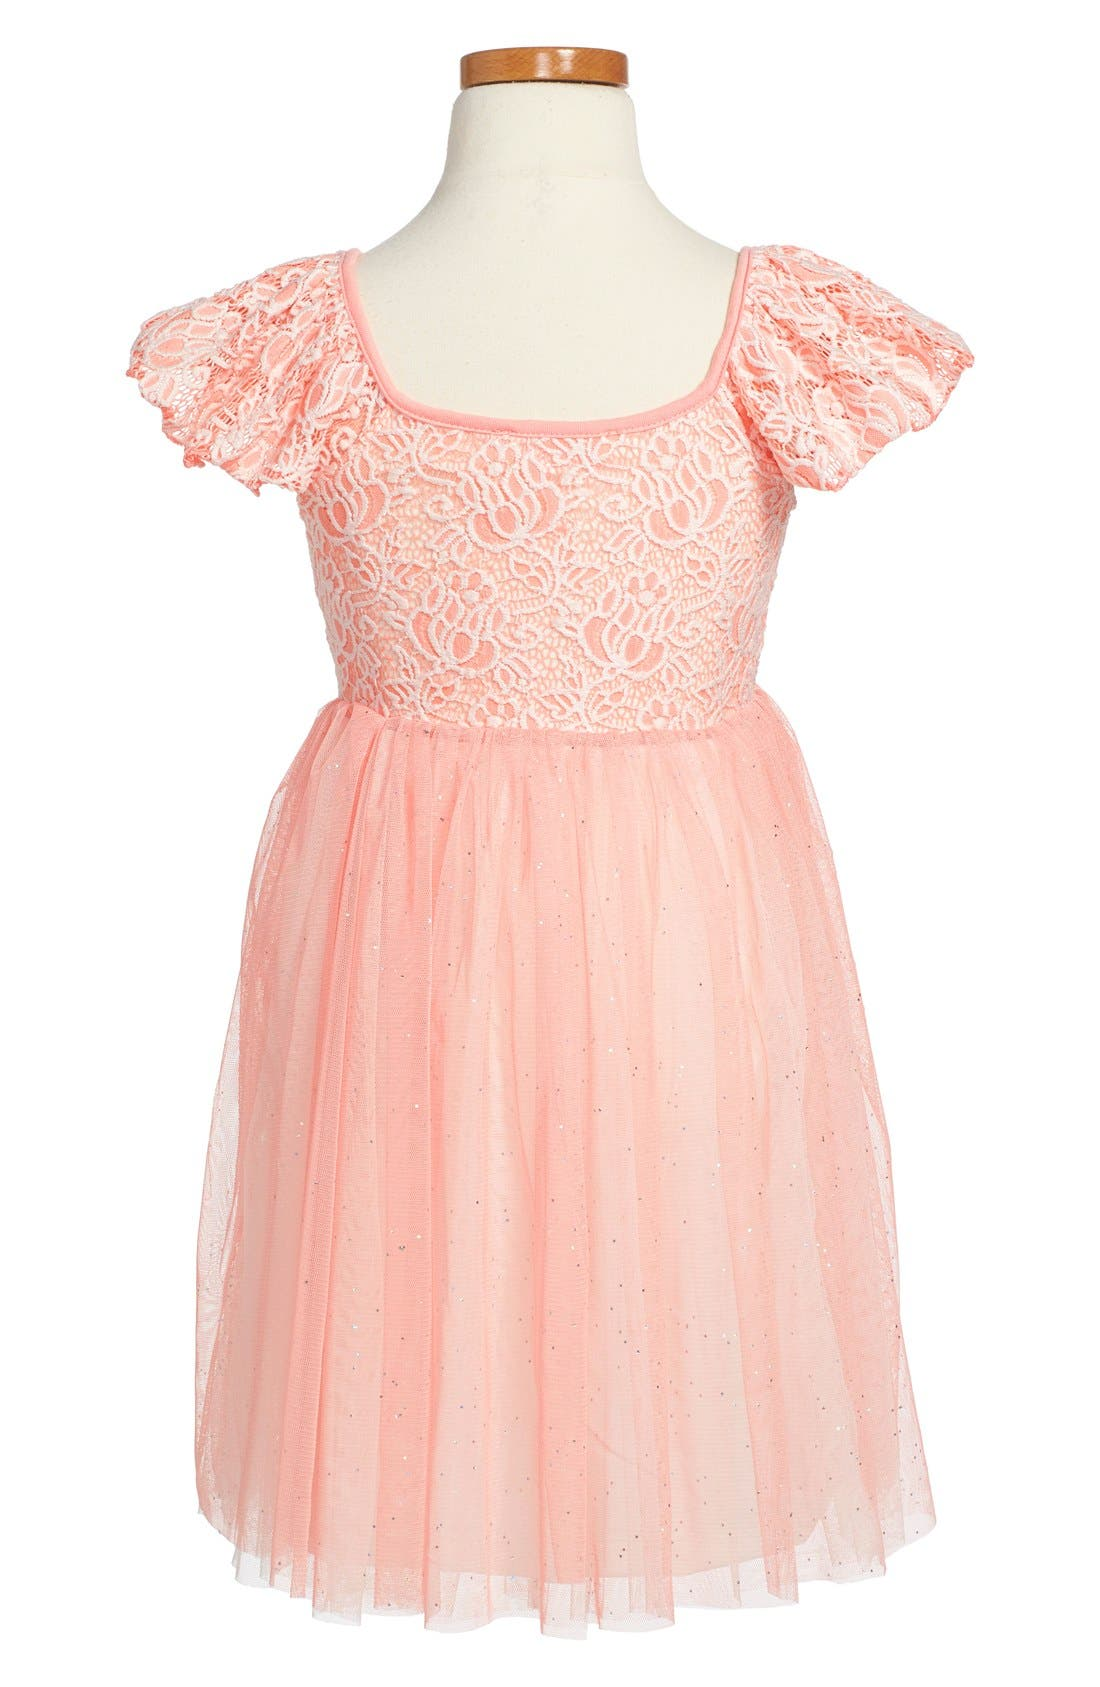 POPATU, Tulle Skirt Party Dress, Alternate thumbnail 2, color, PINK